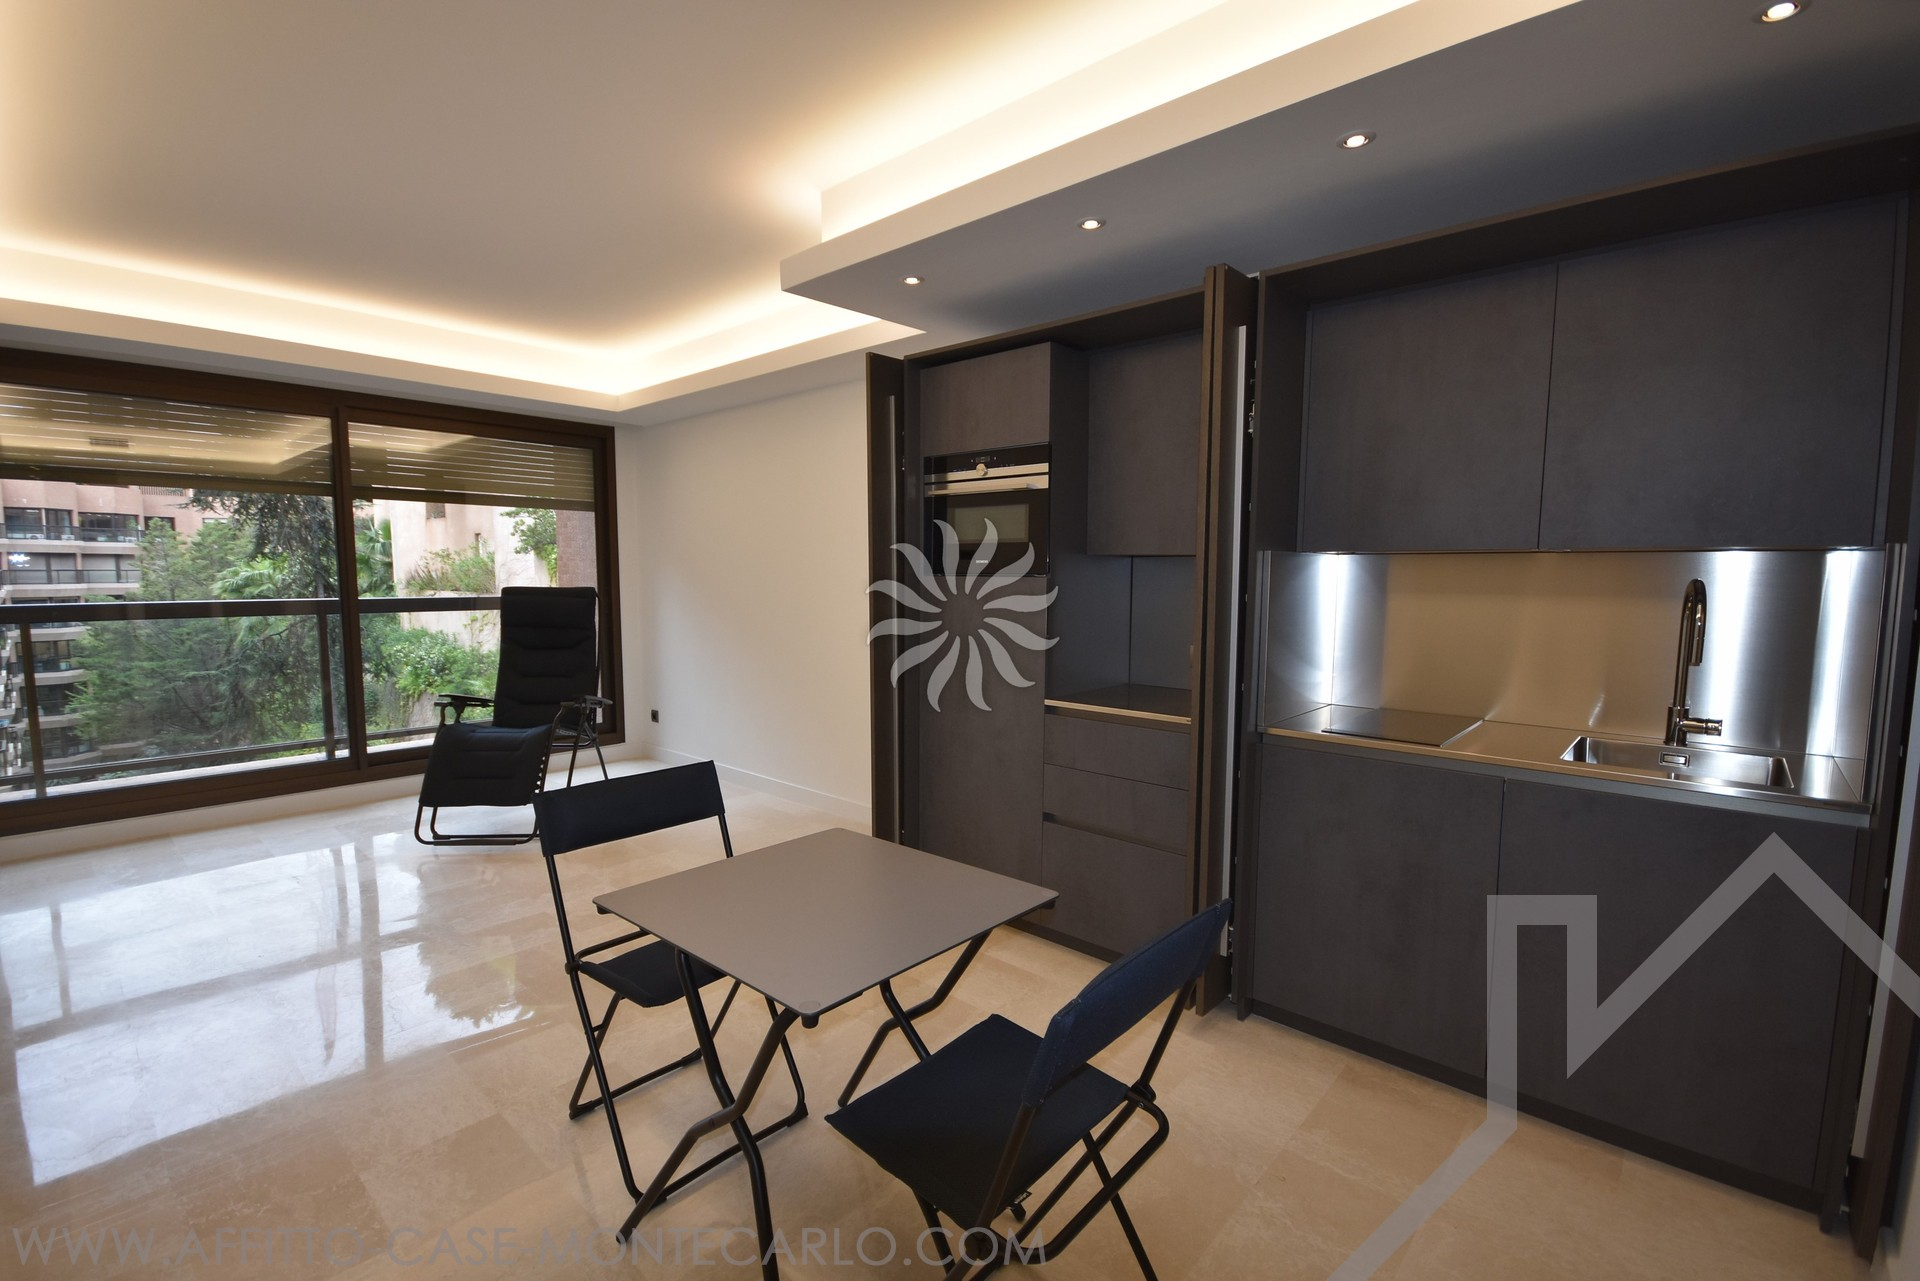 Monte Carlo Sun - New Modern Apartment - Apartments for rent in Monaco